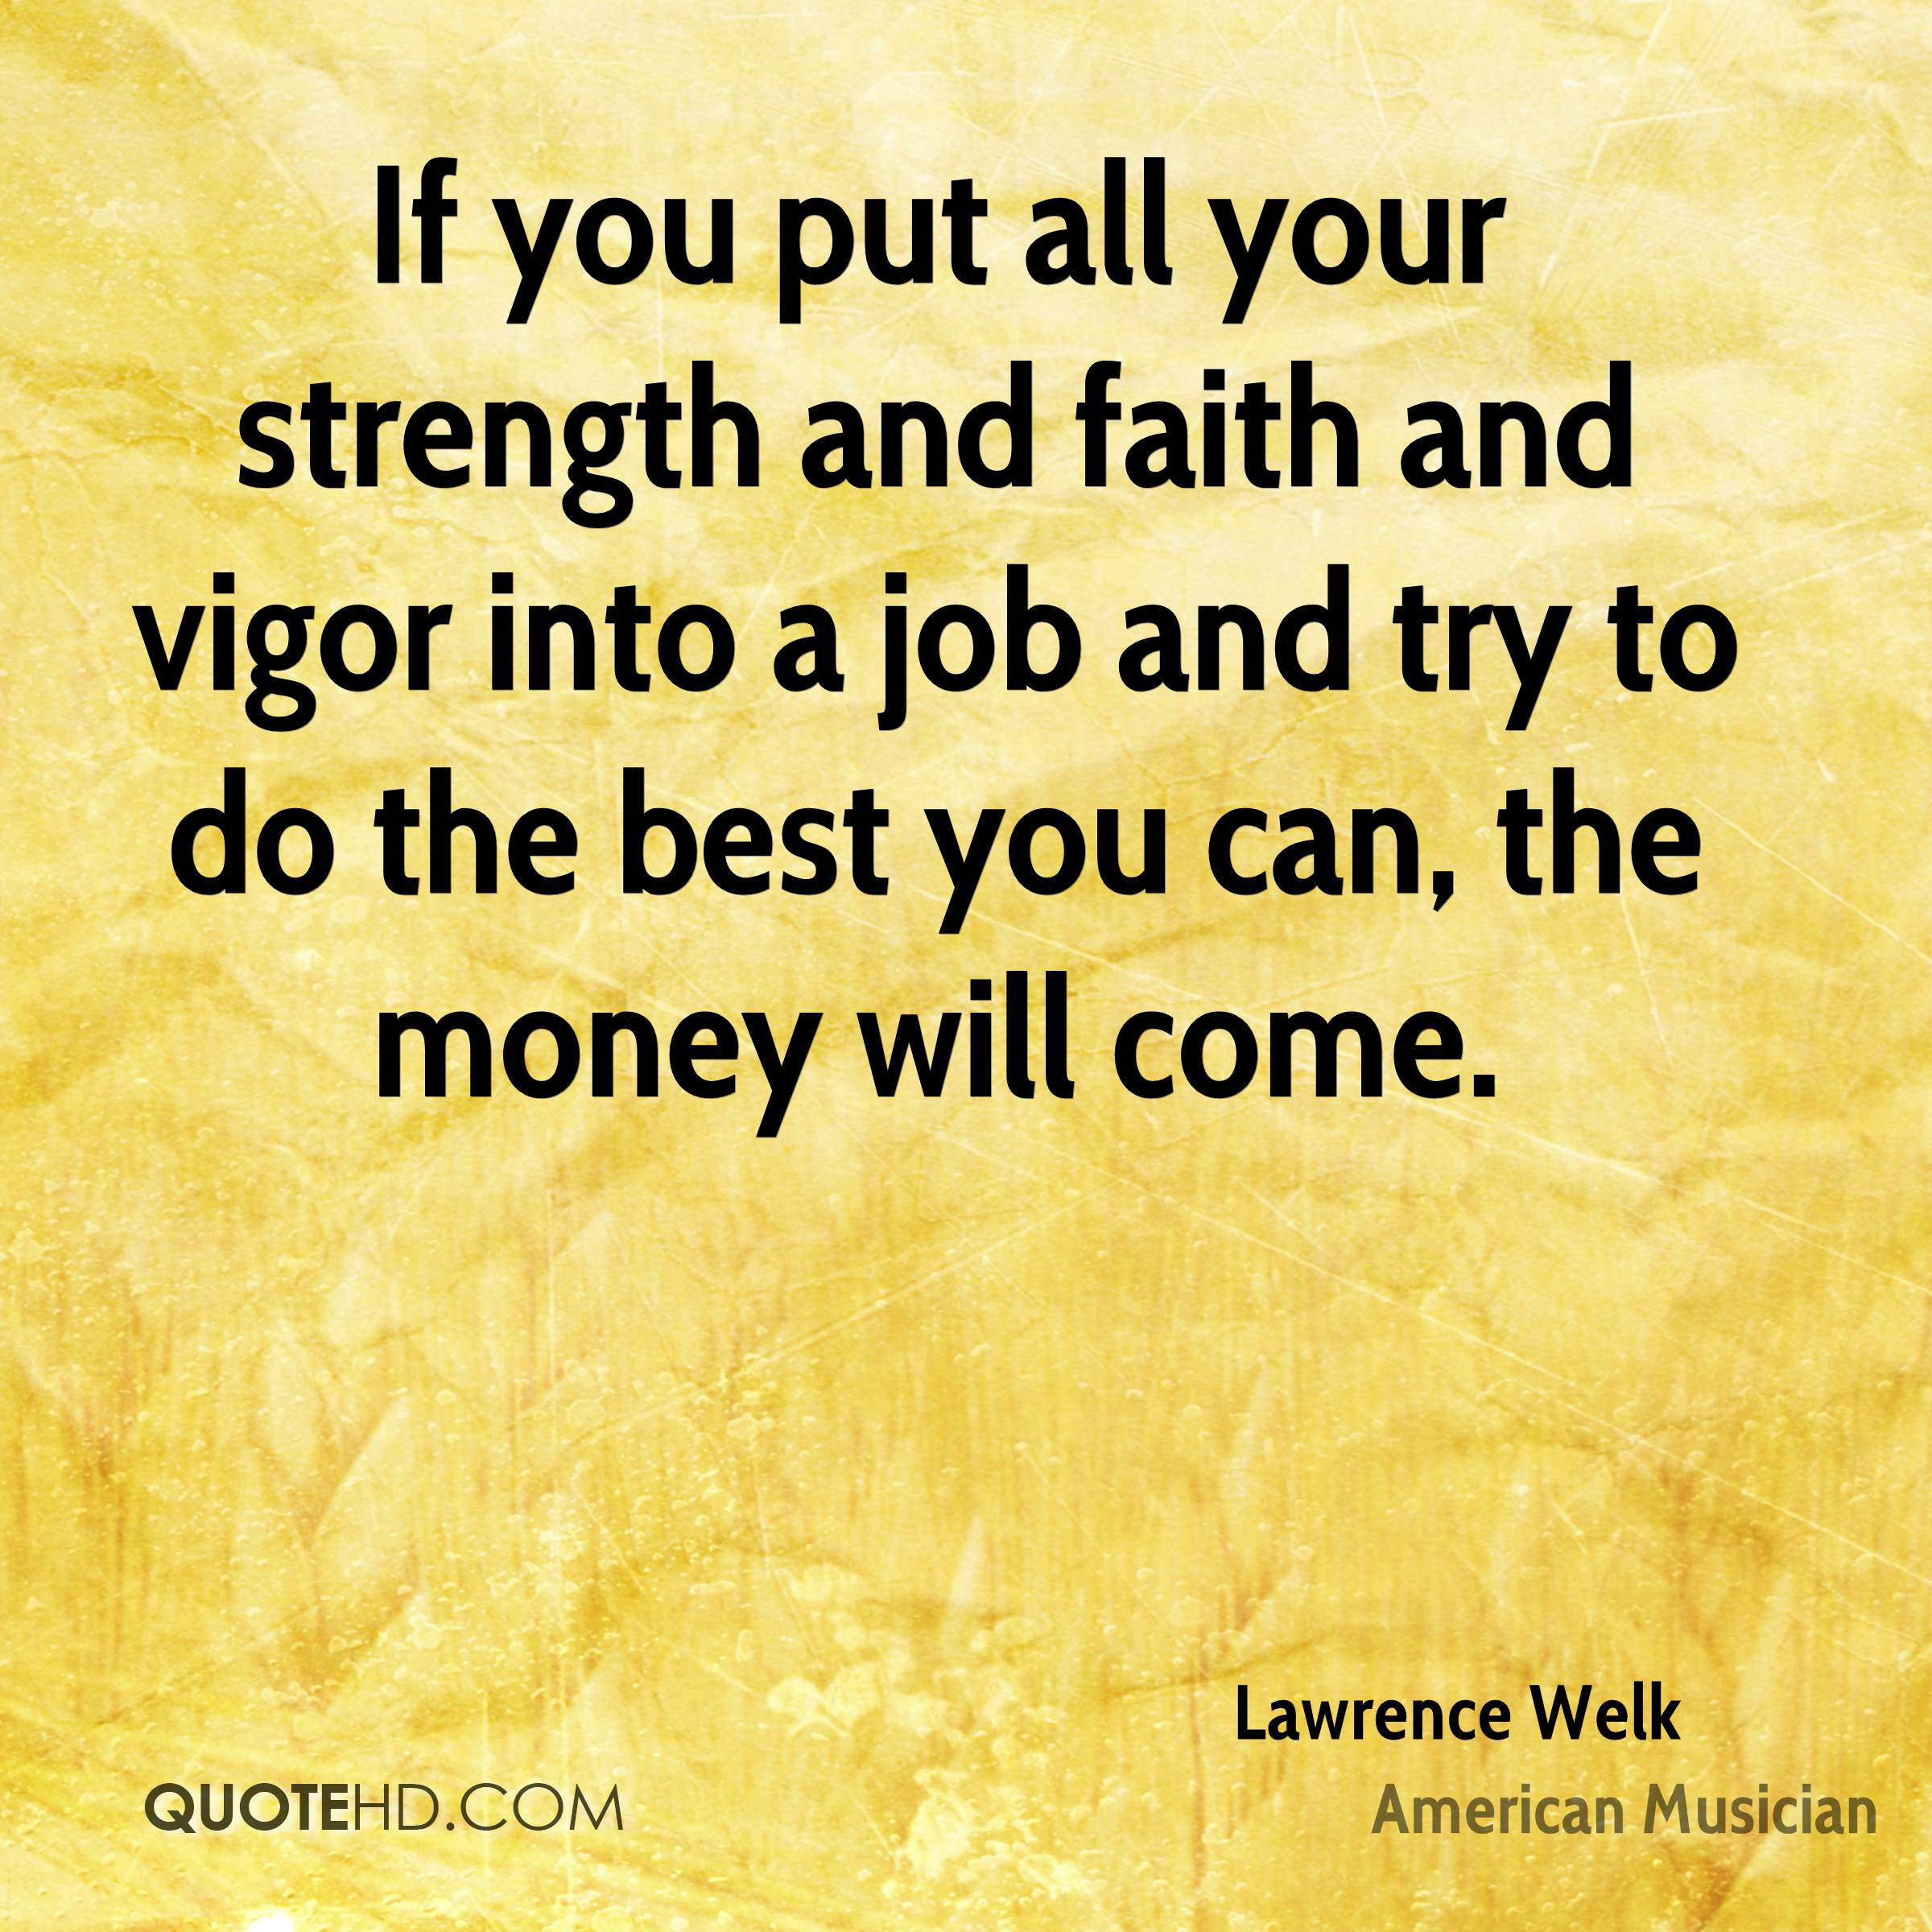 lawrence welk work quotes quotehd if you put all your strength and faith and vigor into a job and try to